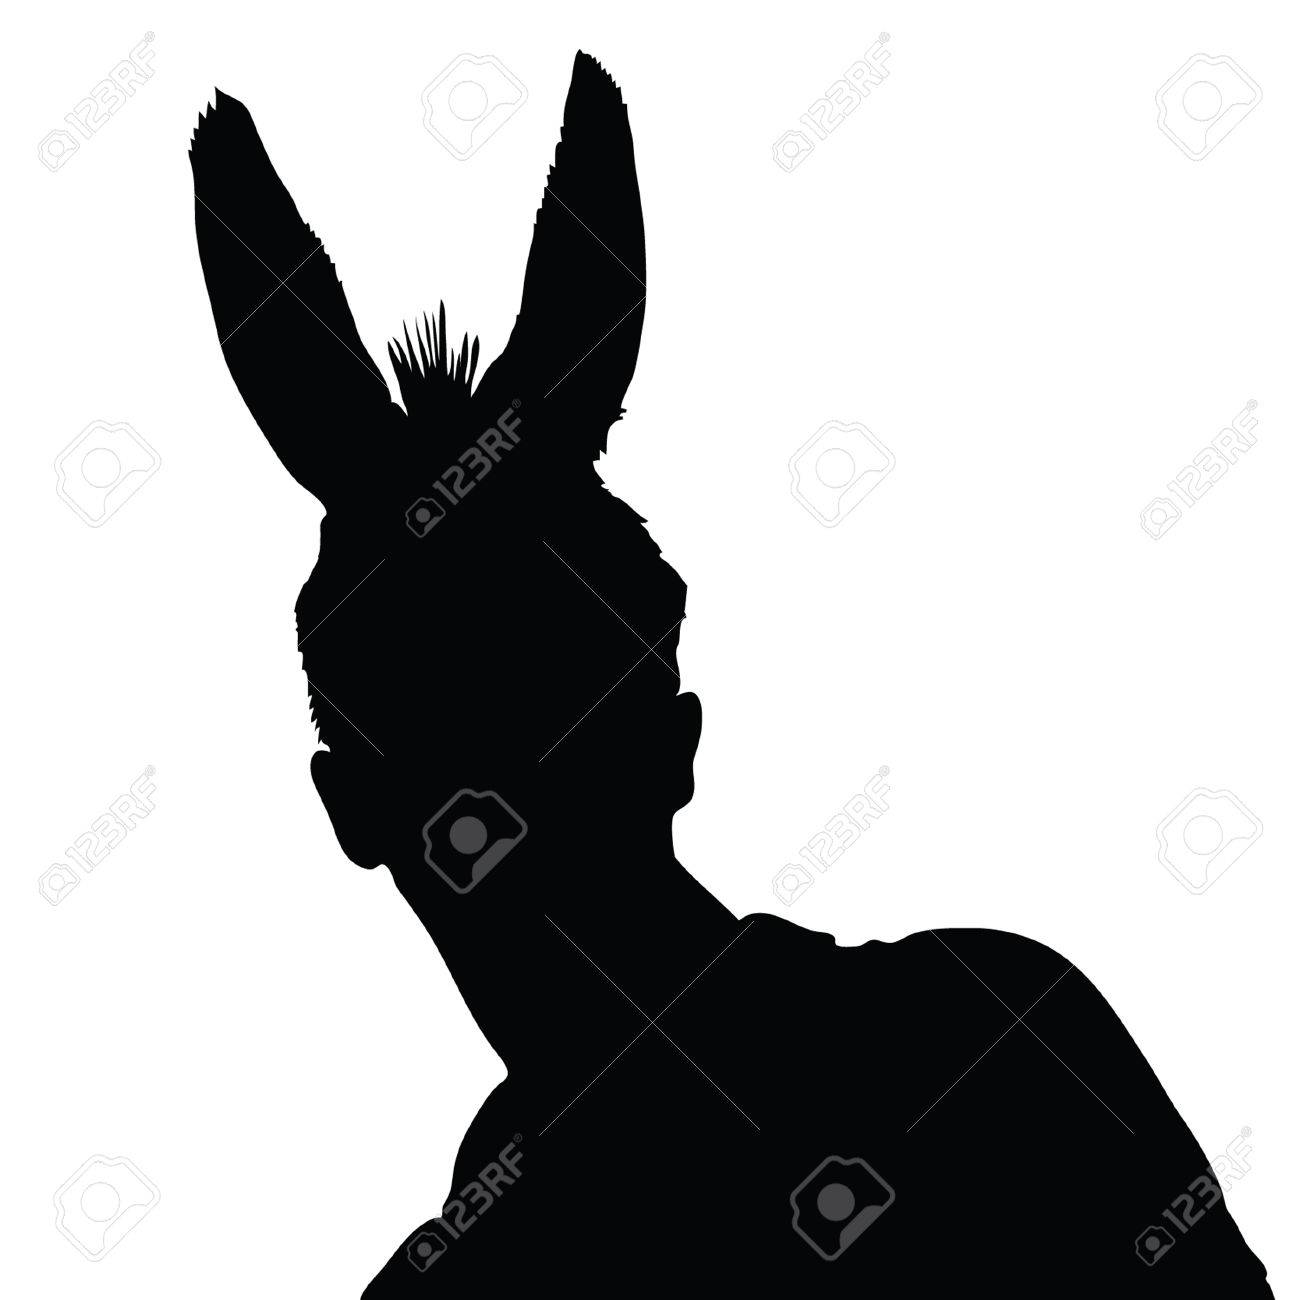 Man With Donkey Ears Vector Illustration Royalty Free Cliparts ...